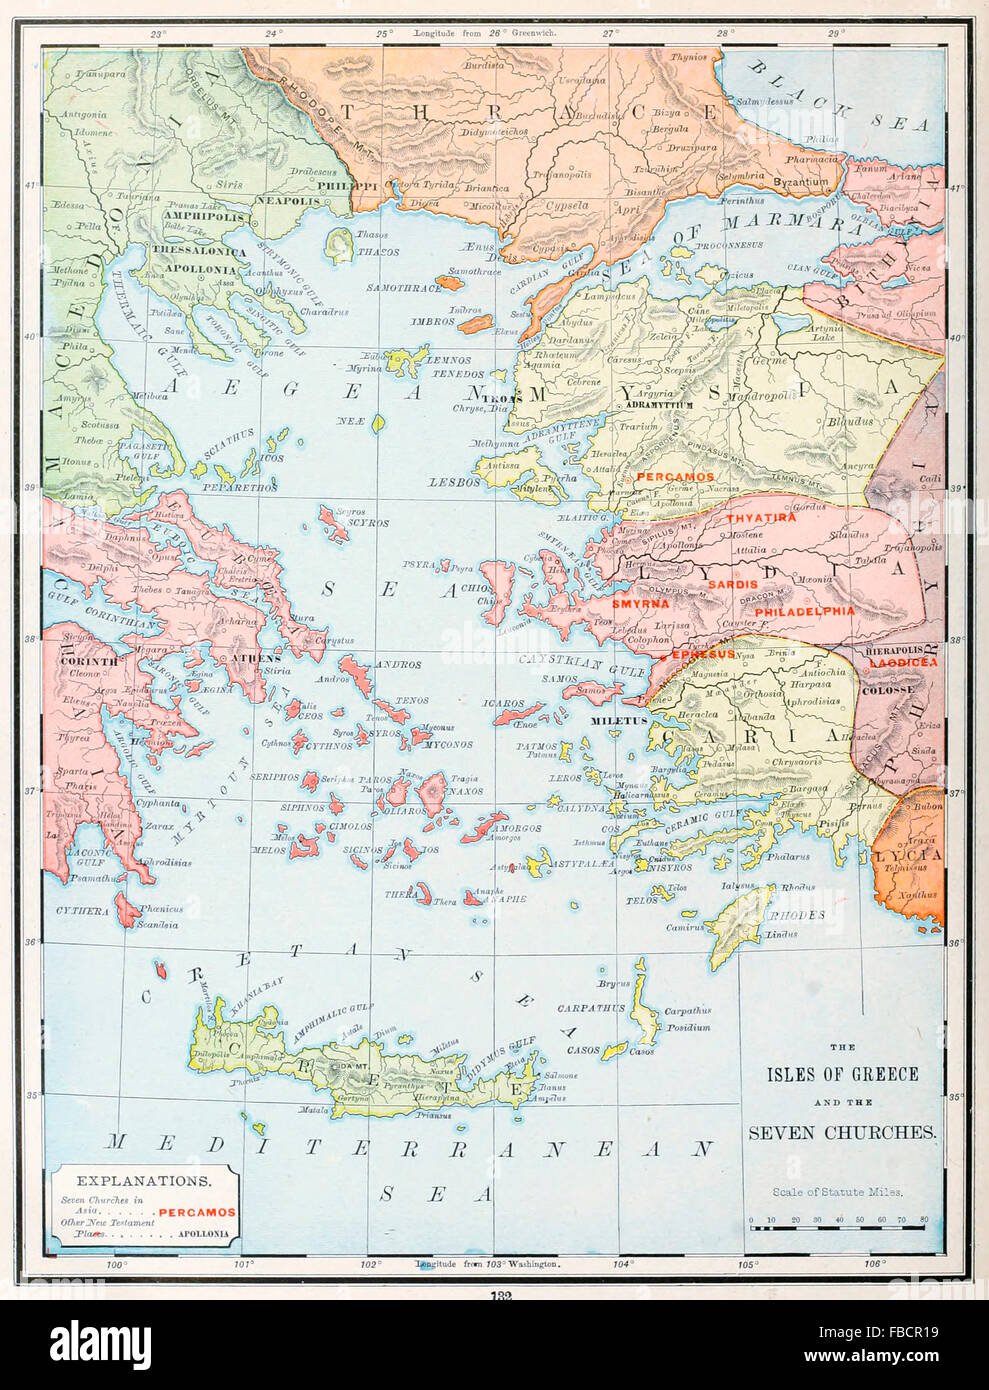 Map of the isles of greece and the seven churches early map of the isles of greece and the seven churches early christian ministry sciox Choice Image